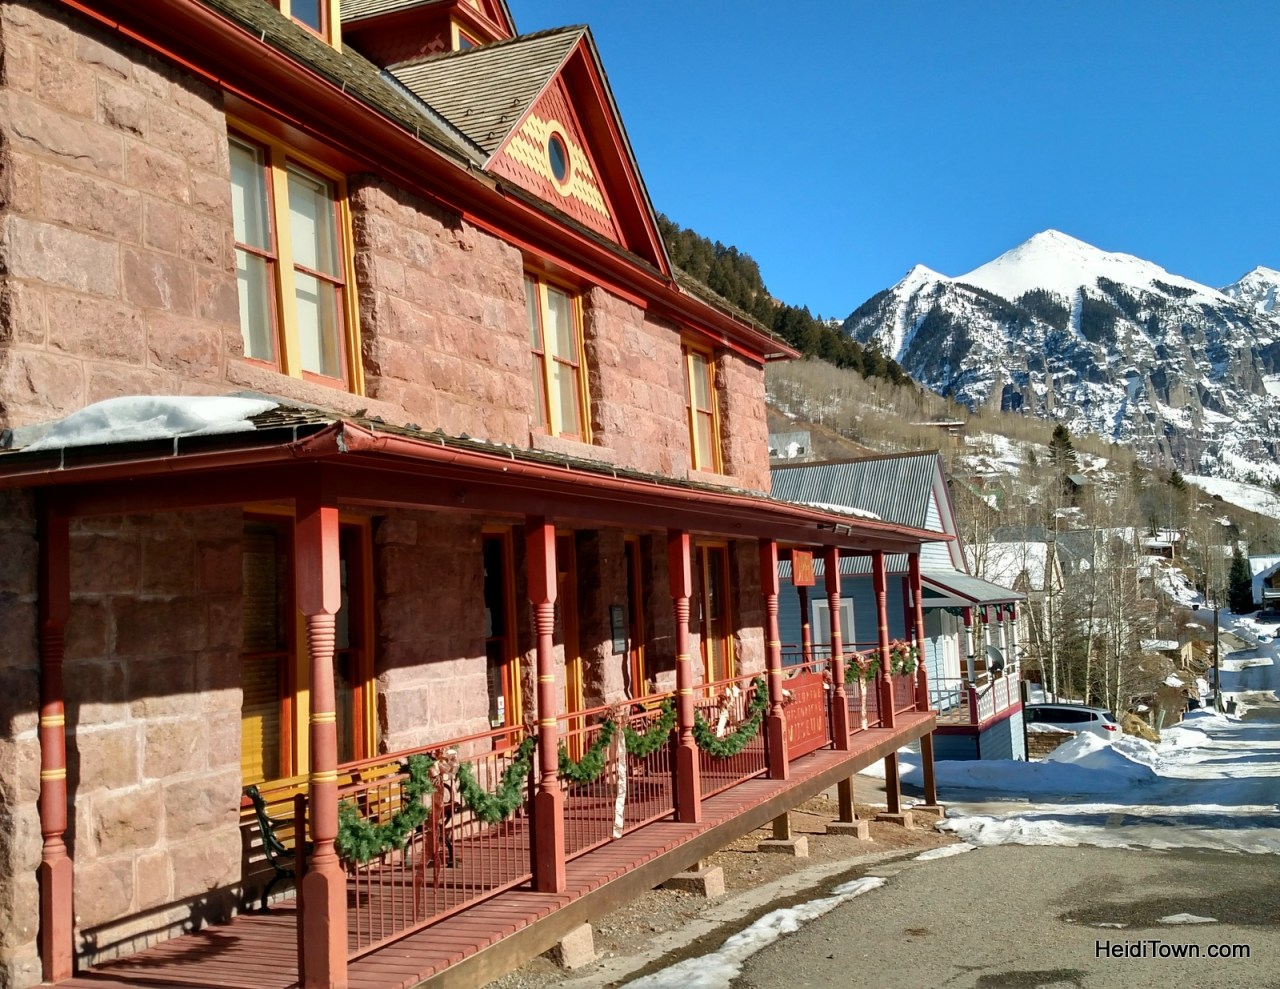 Telluride Historical Museum. Things to do in Telluride when you're not skiing. HeidiTown.com